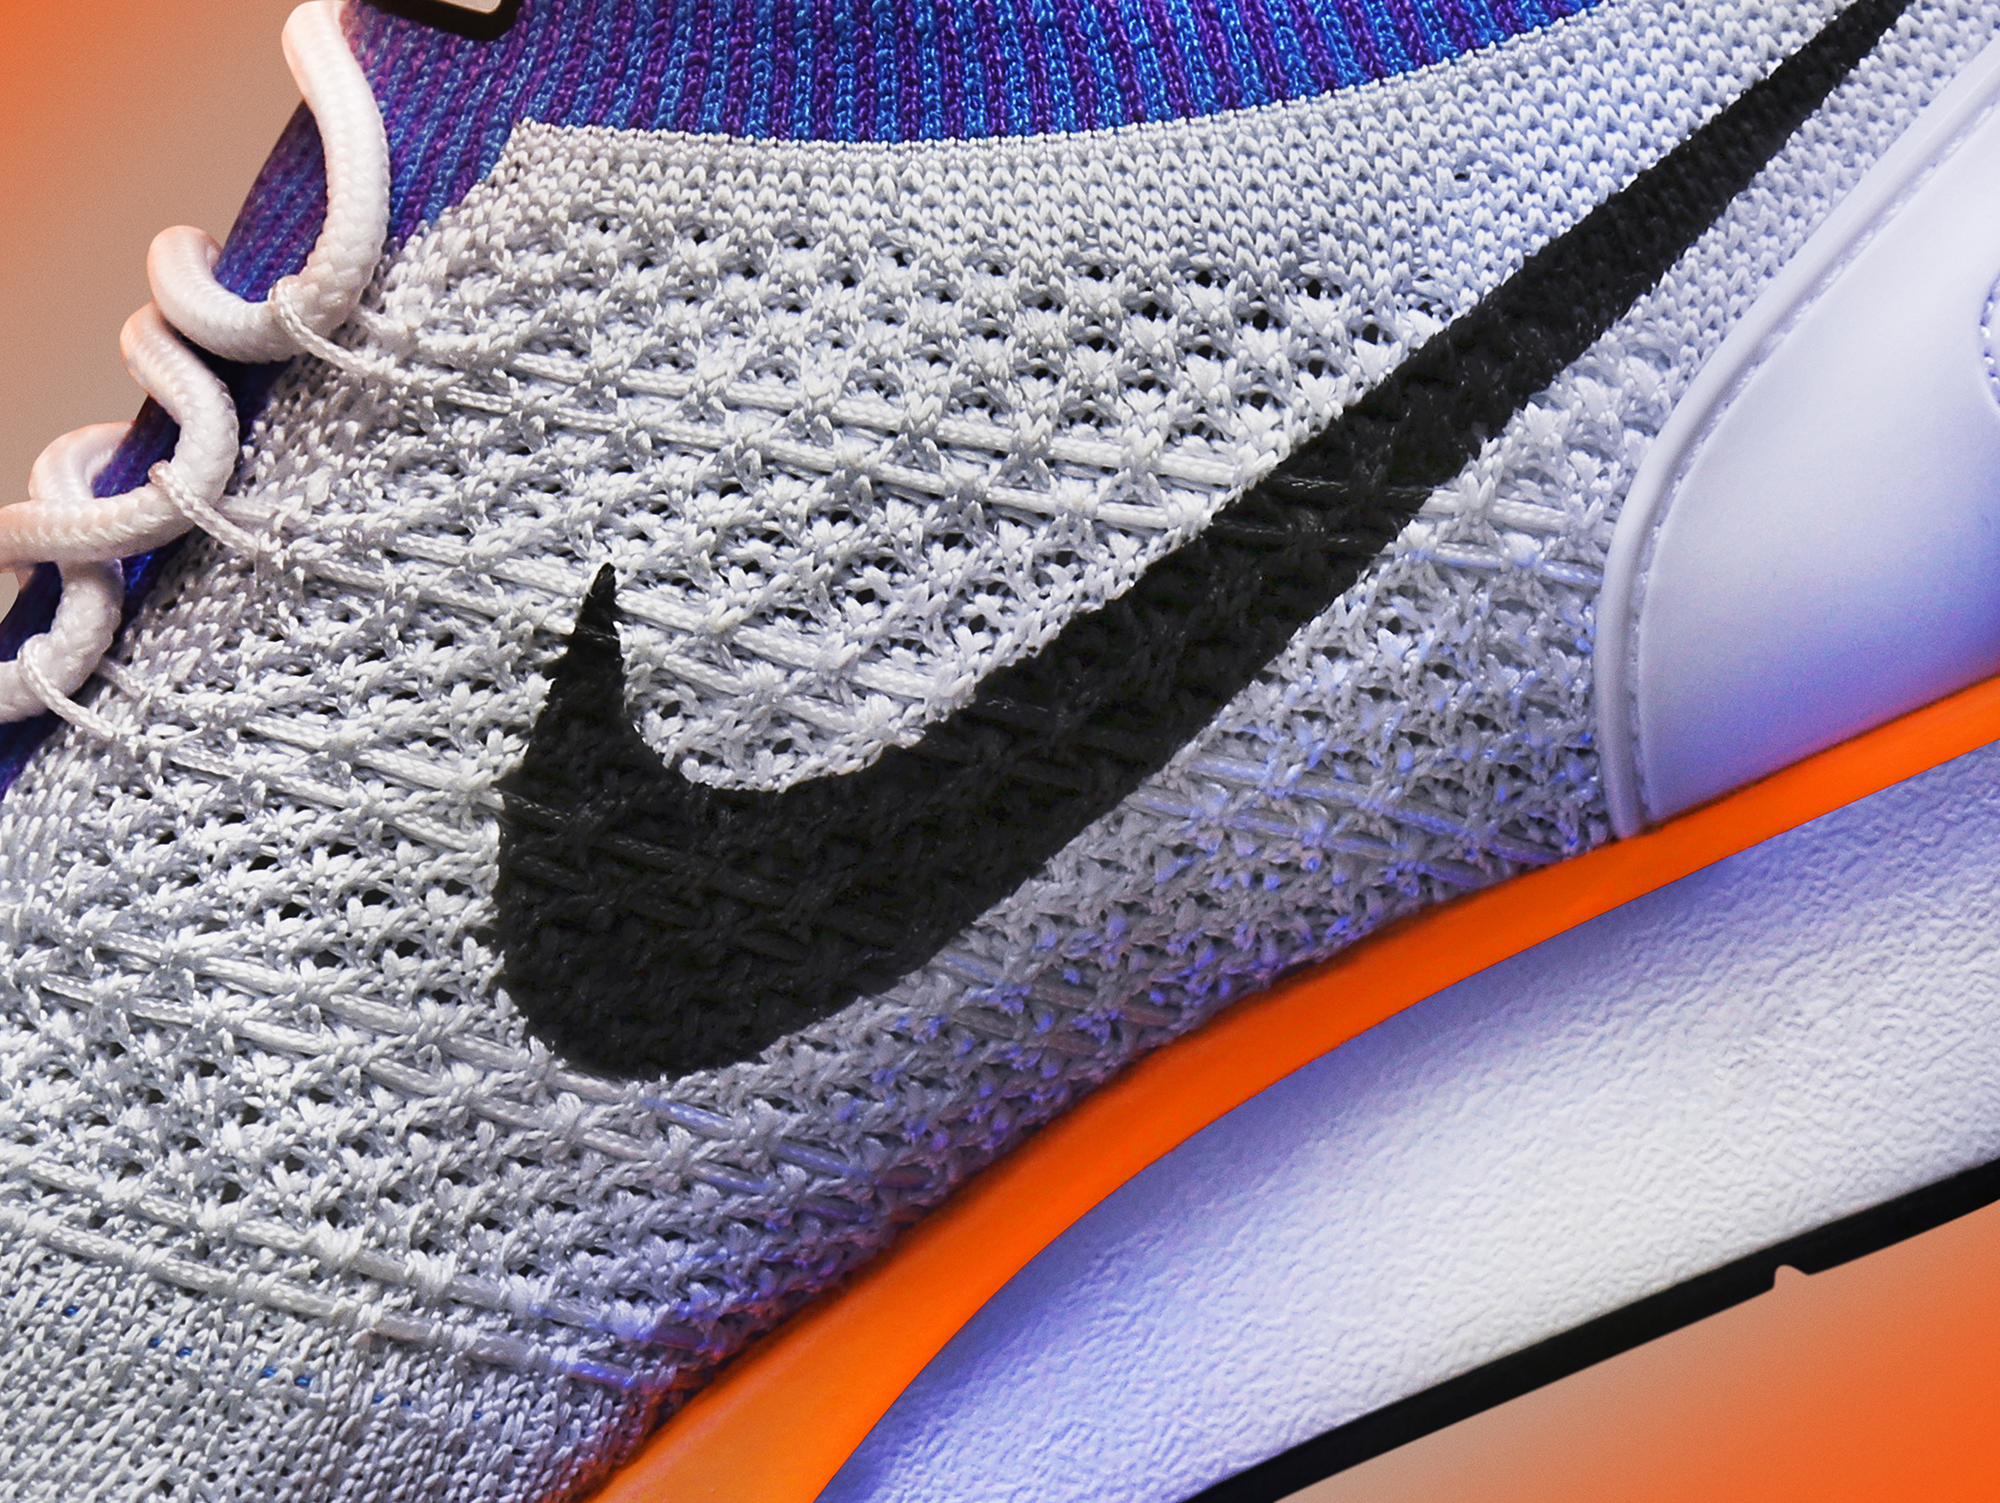 588f66ea76125 A full flyknit upper has been added to the upper in a similar fashion to 2012 s  Flyknit Racer